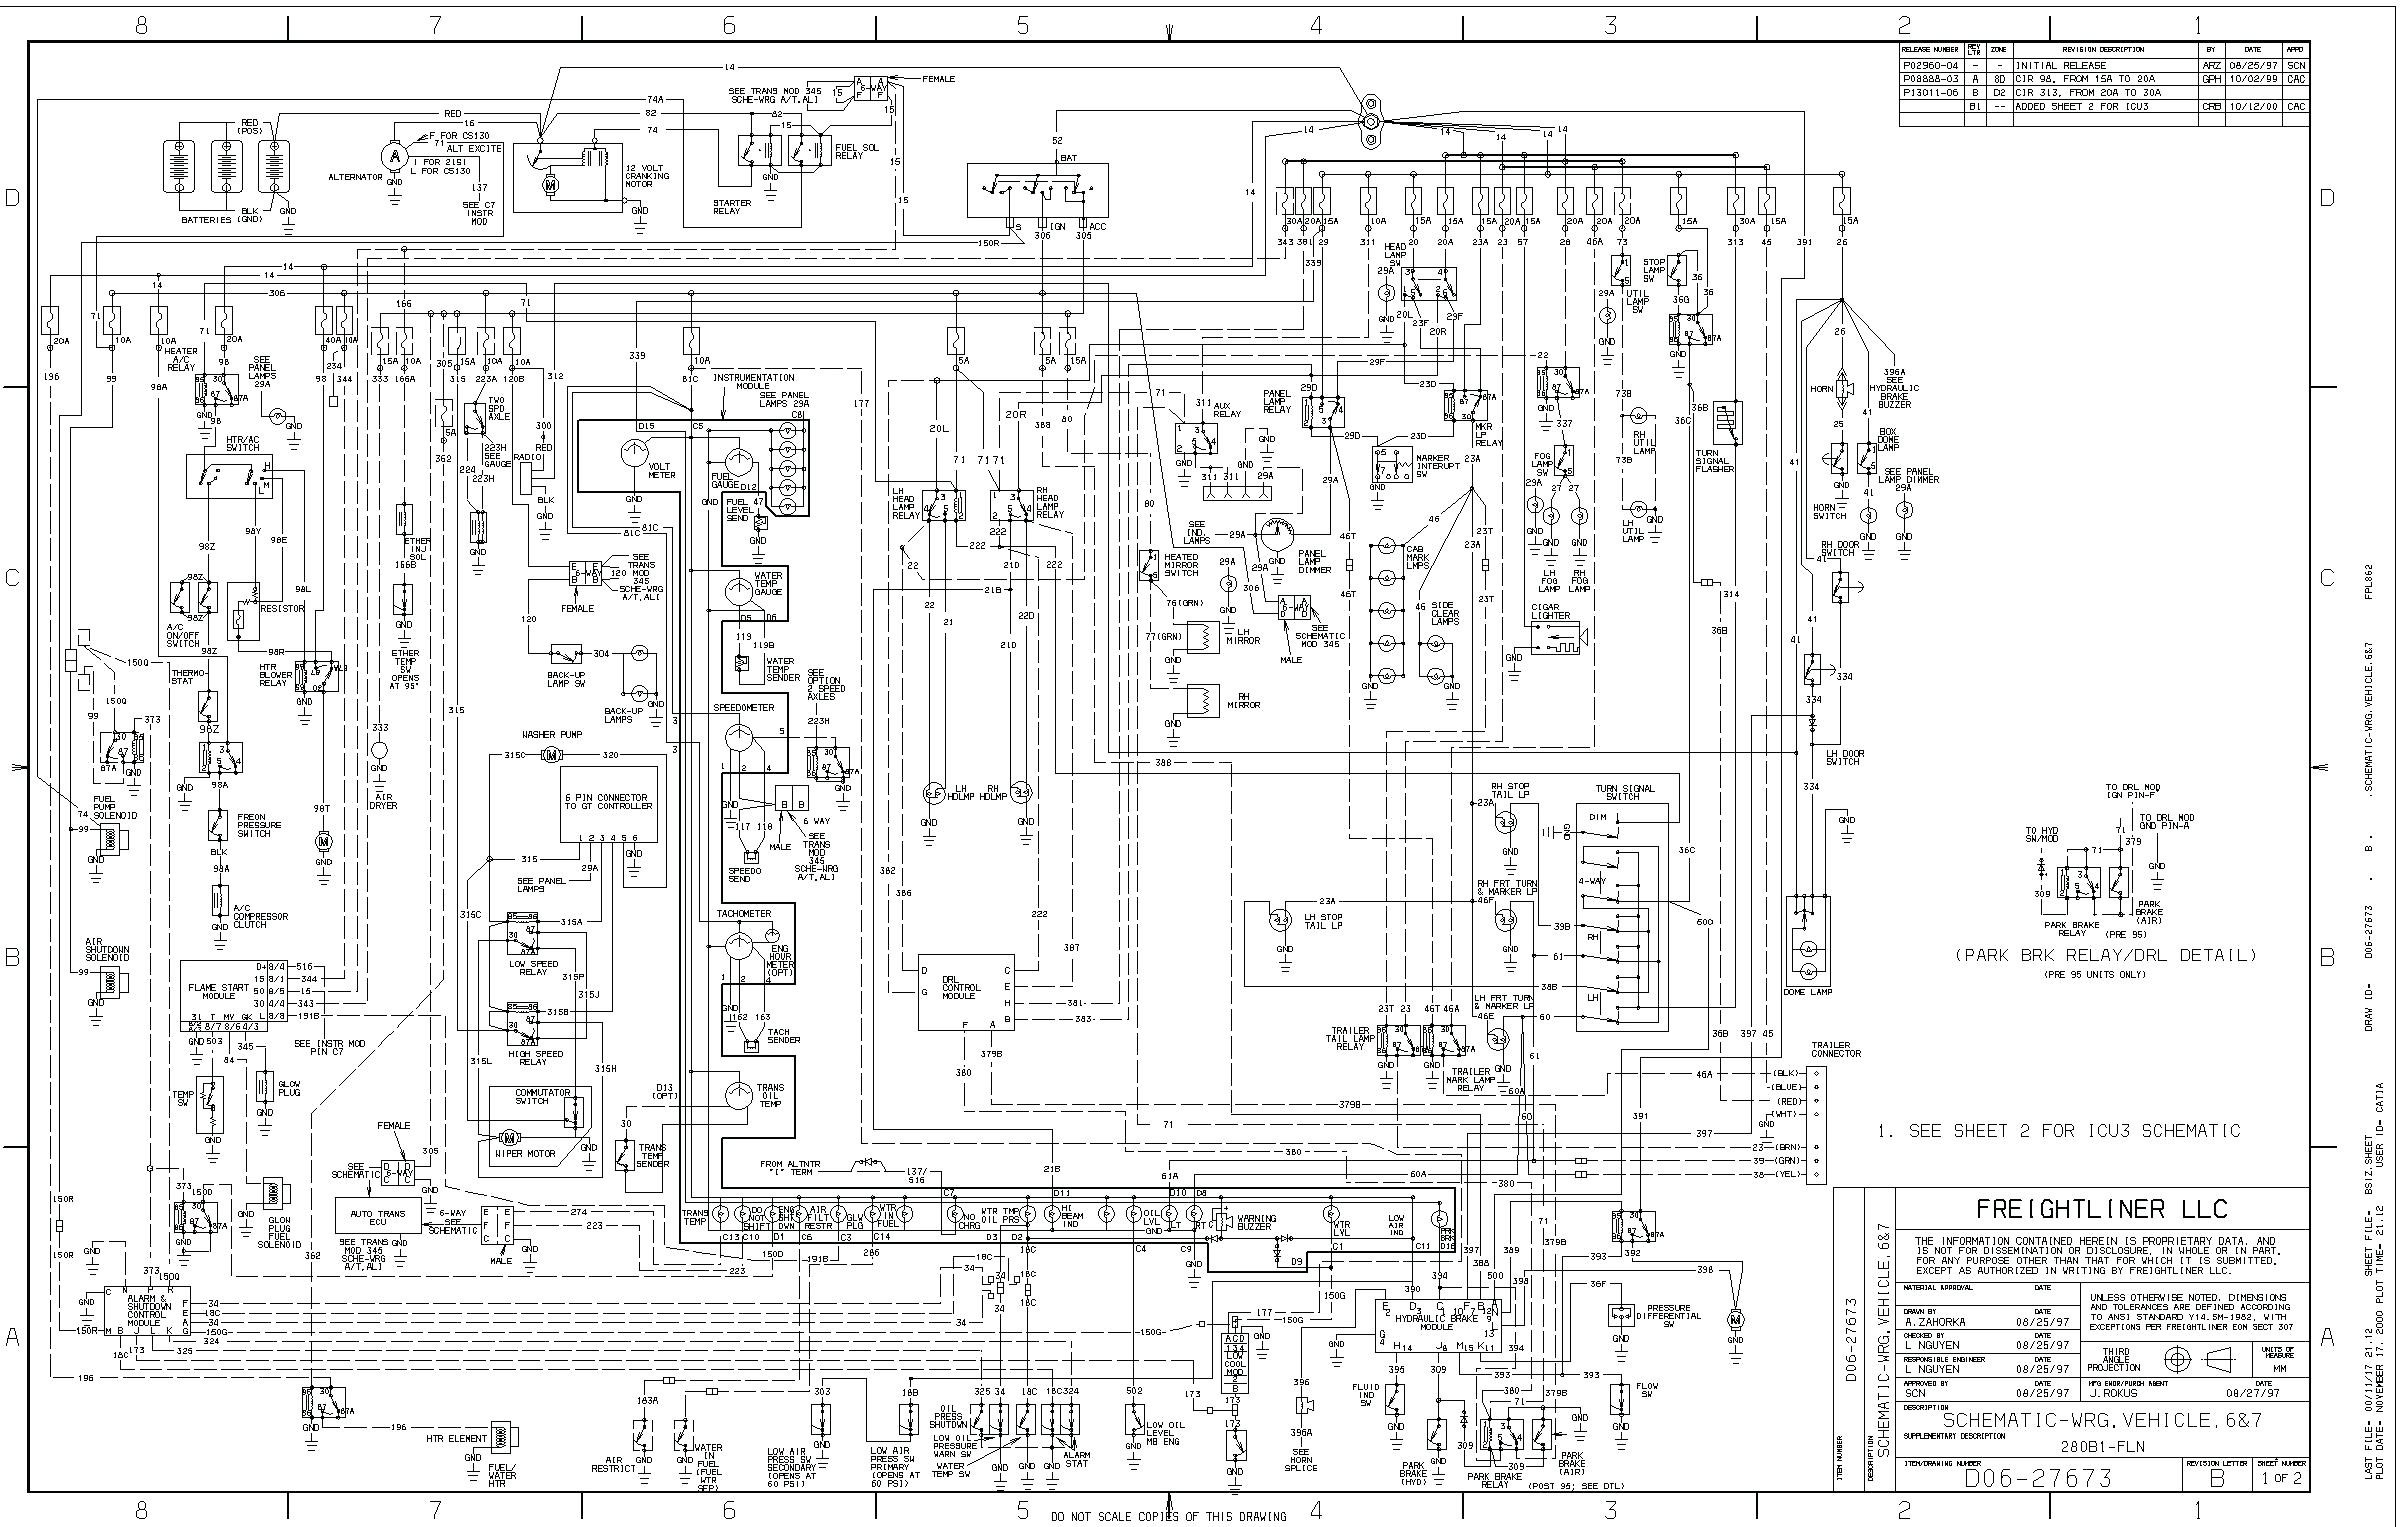 96 Camry Engine Diagram. 96 Camry Engine Diagram. Holden. Holden Astra 2003 Fuse Box Diagram At Justdesktopwallpapers.com